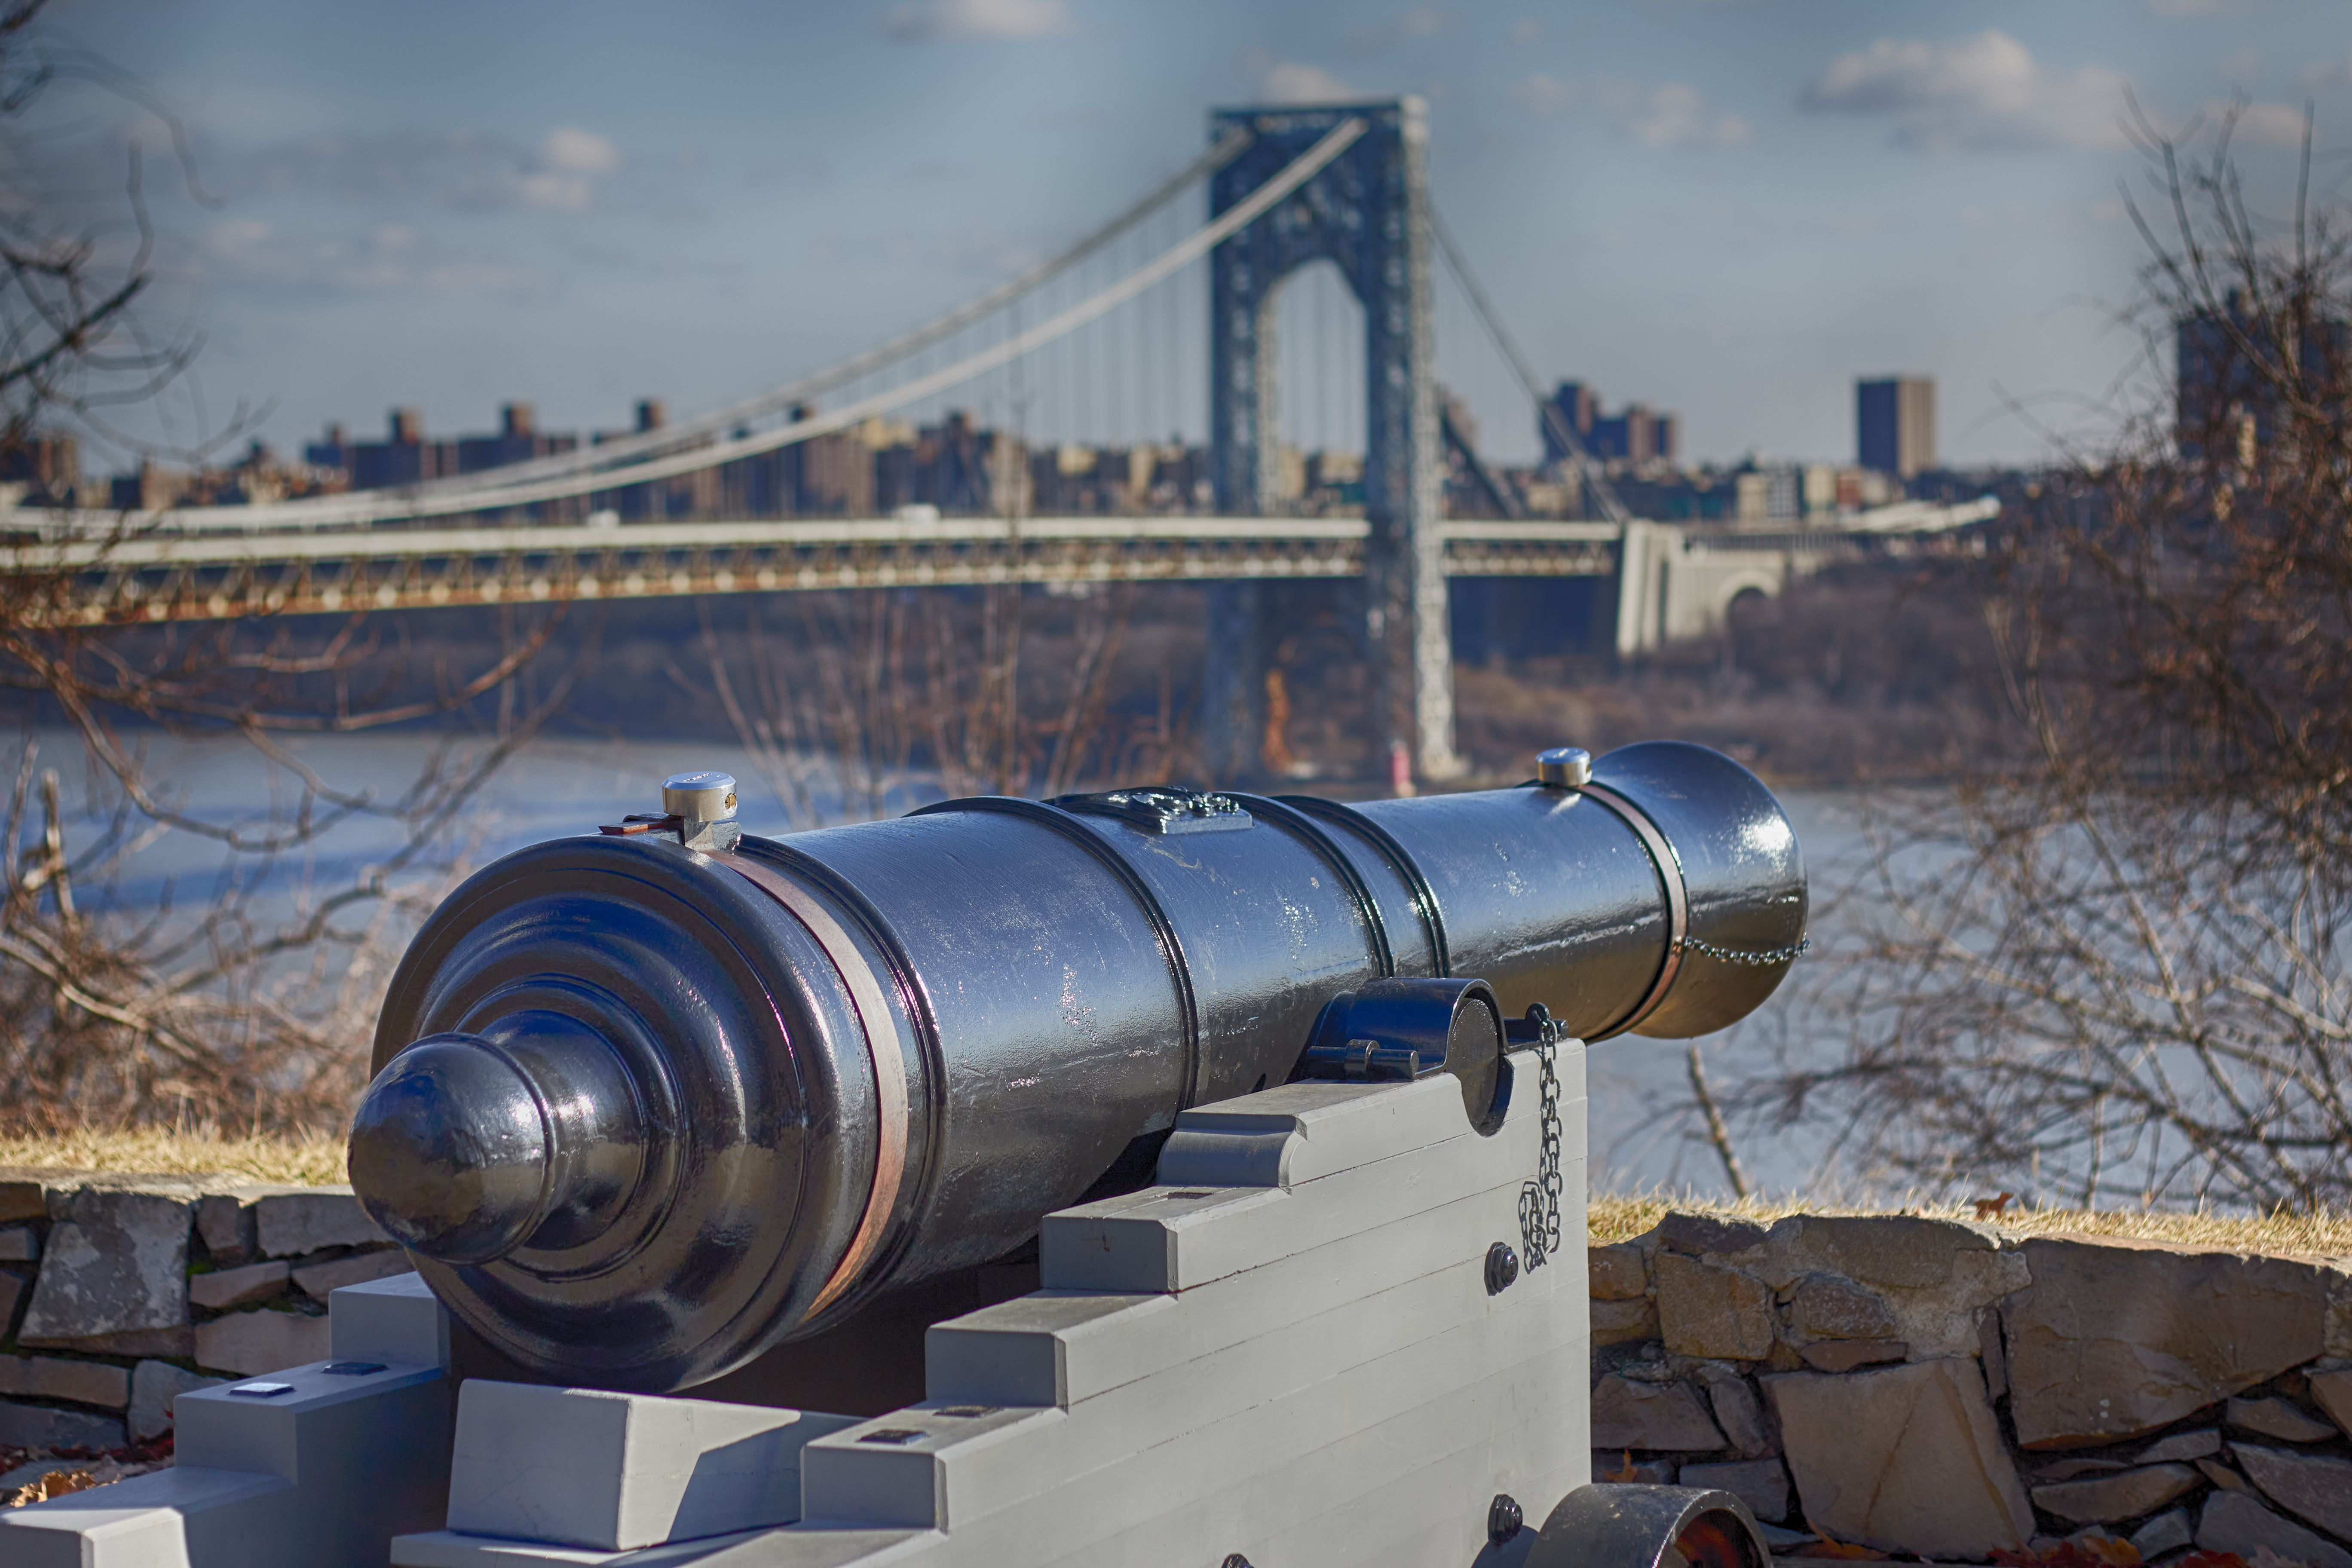 Cannon overlooking river, with George Washington Bridge in background.